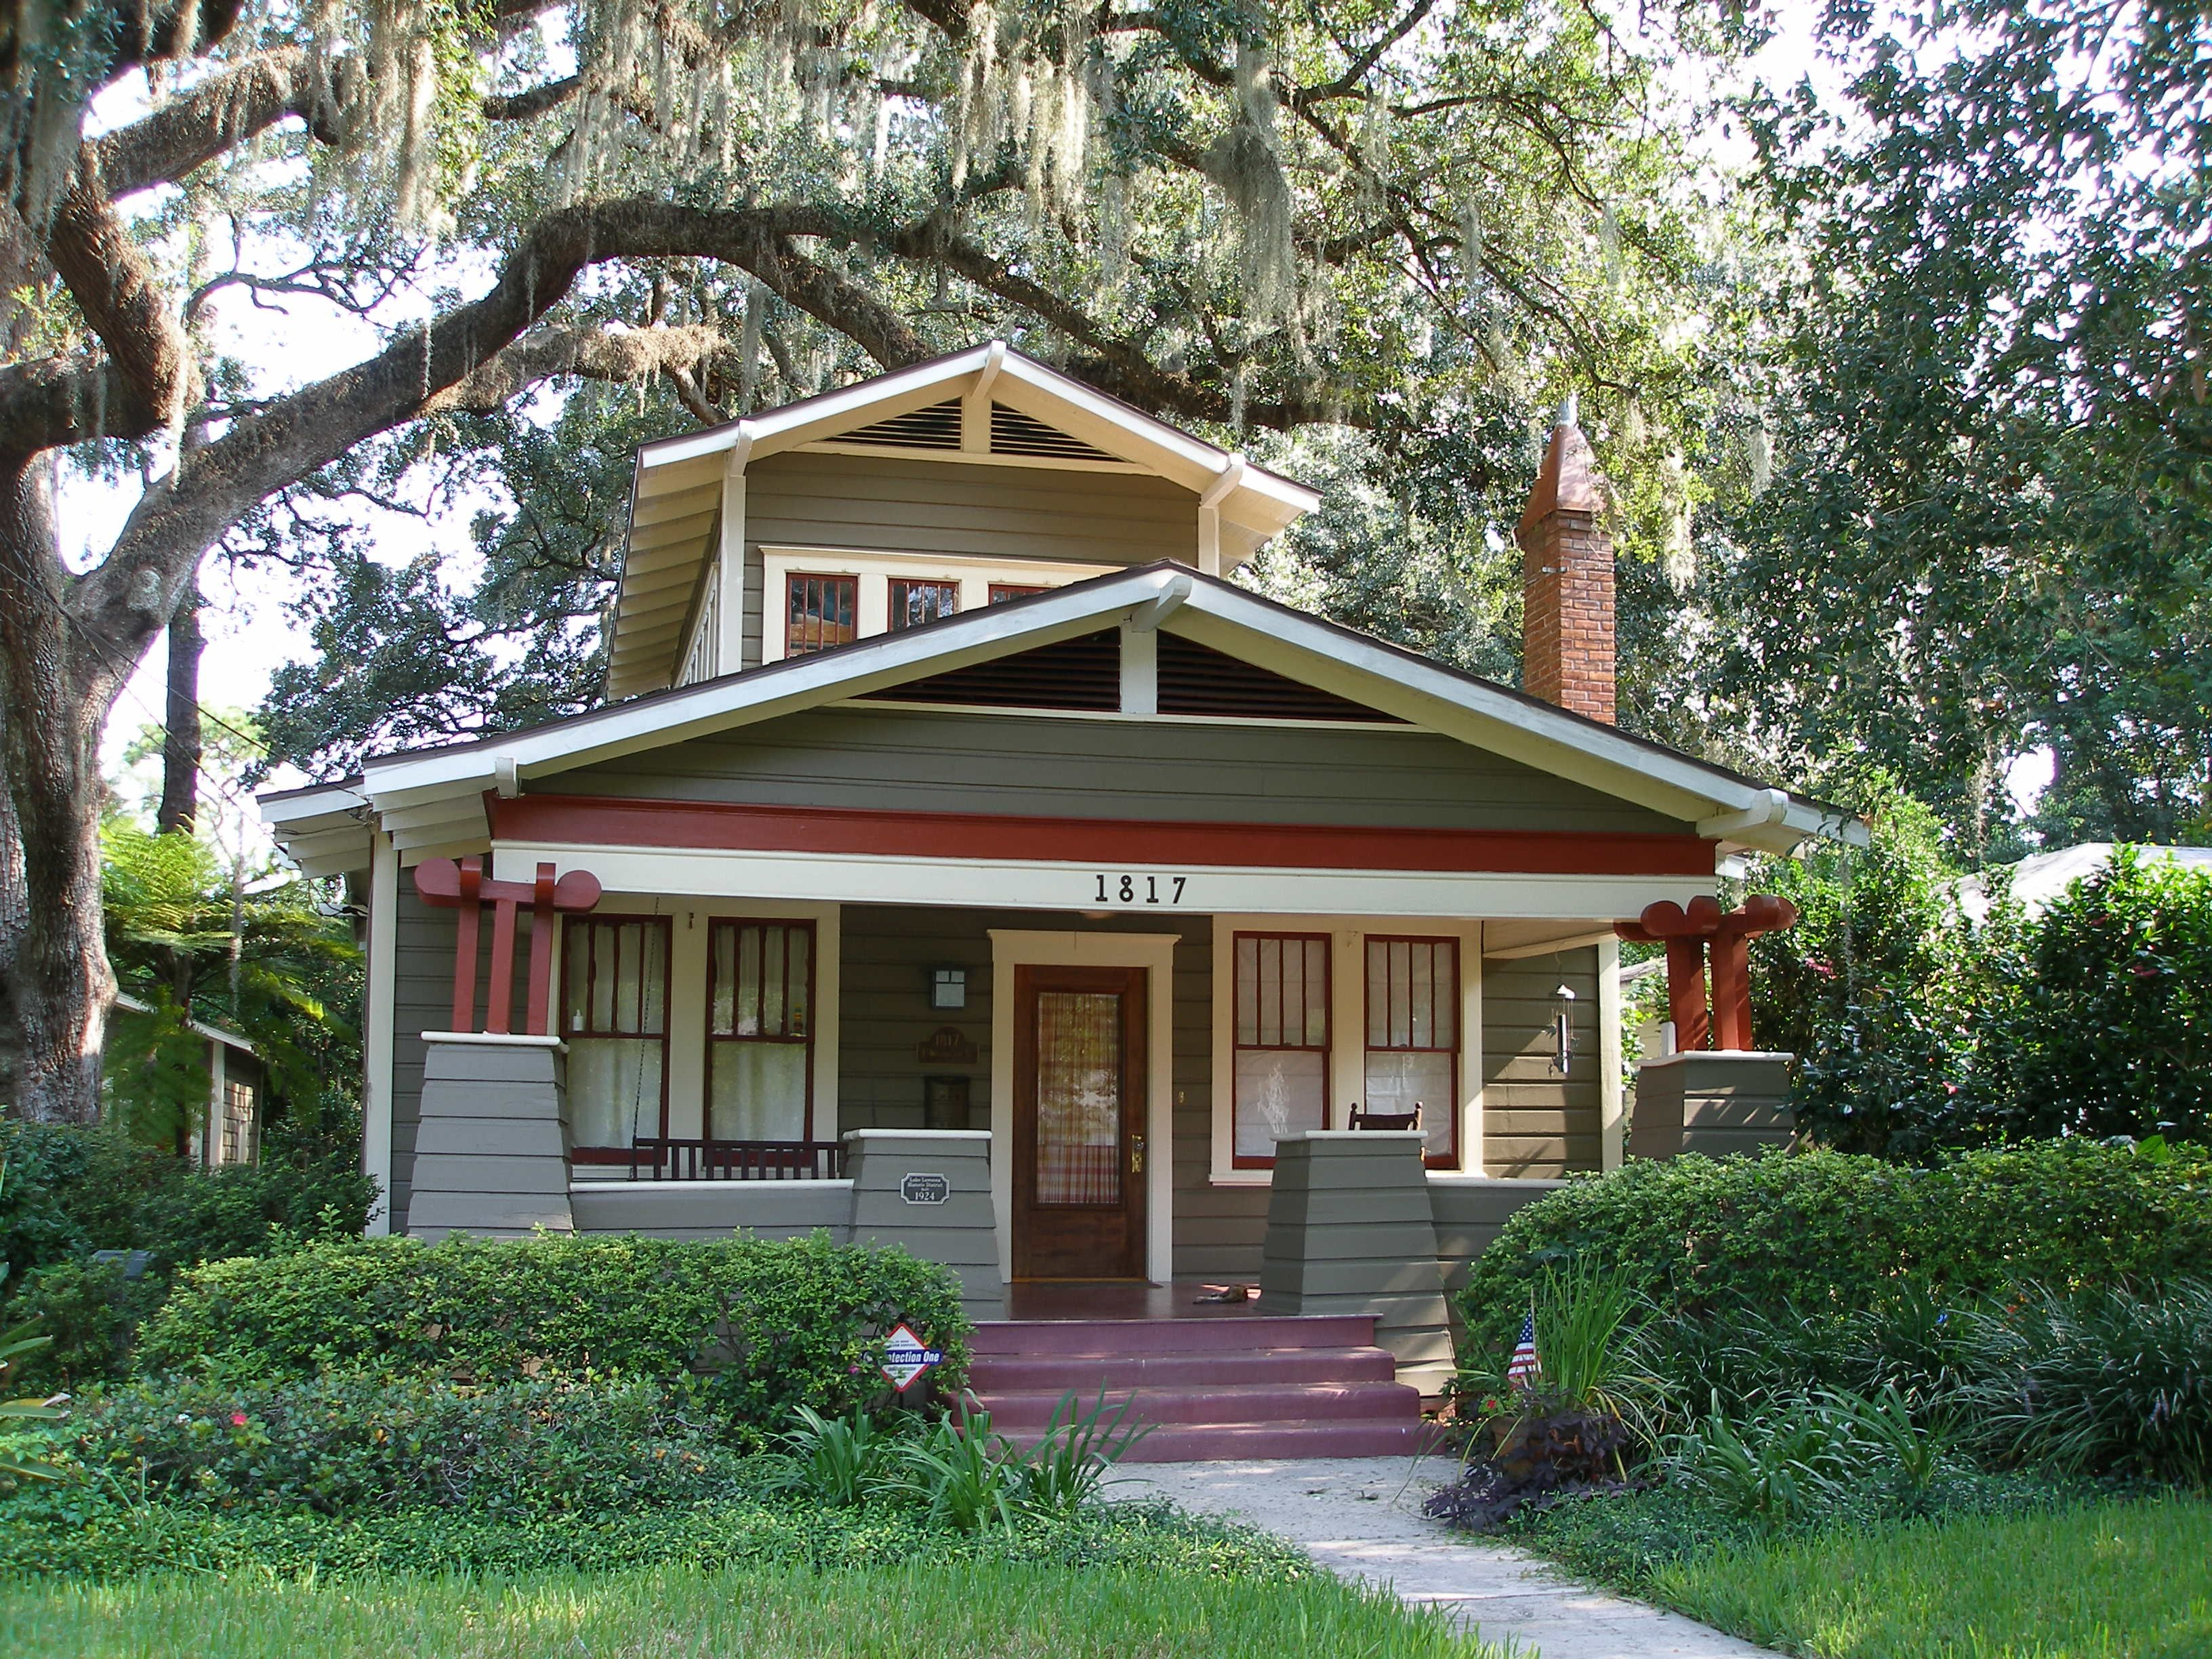 Lovely Classic Craftsman Bungalow Colors | Orlando Historic Districts   Lake  Lawsona | The Craftsman Blog